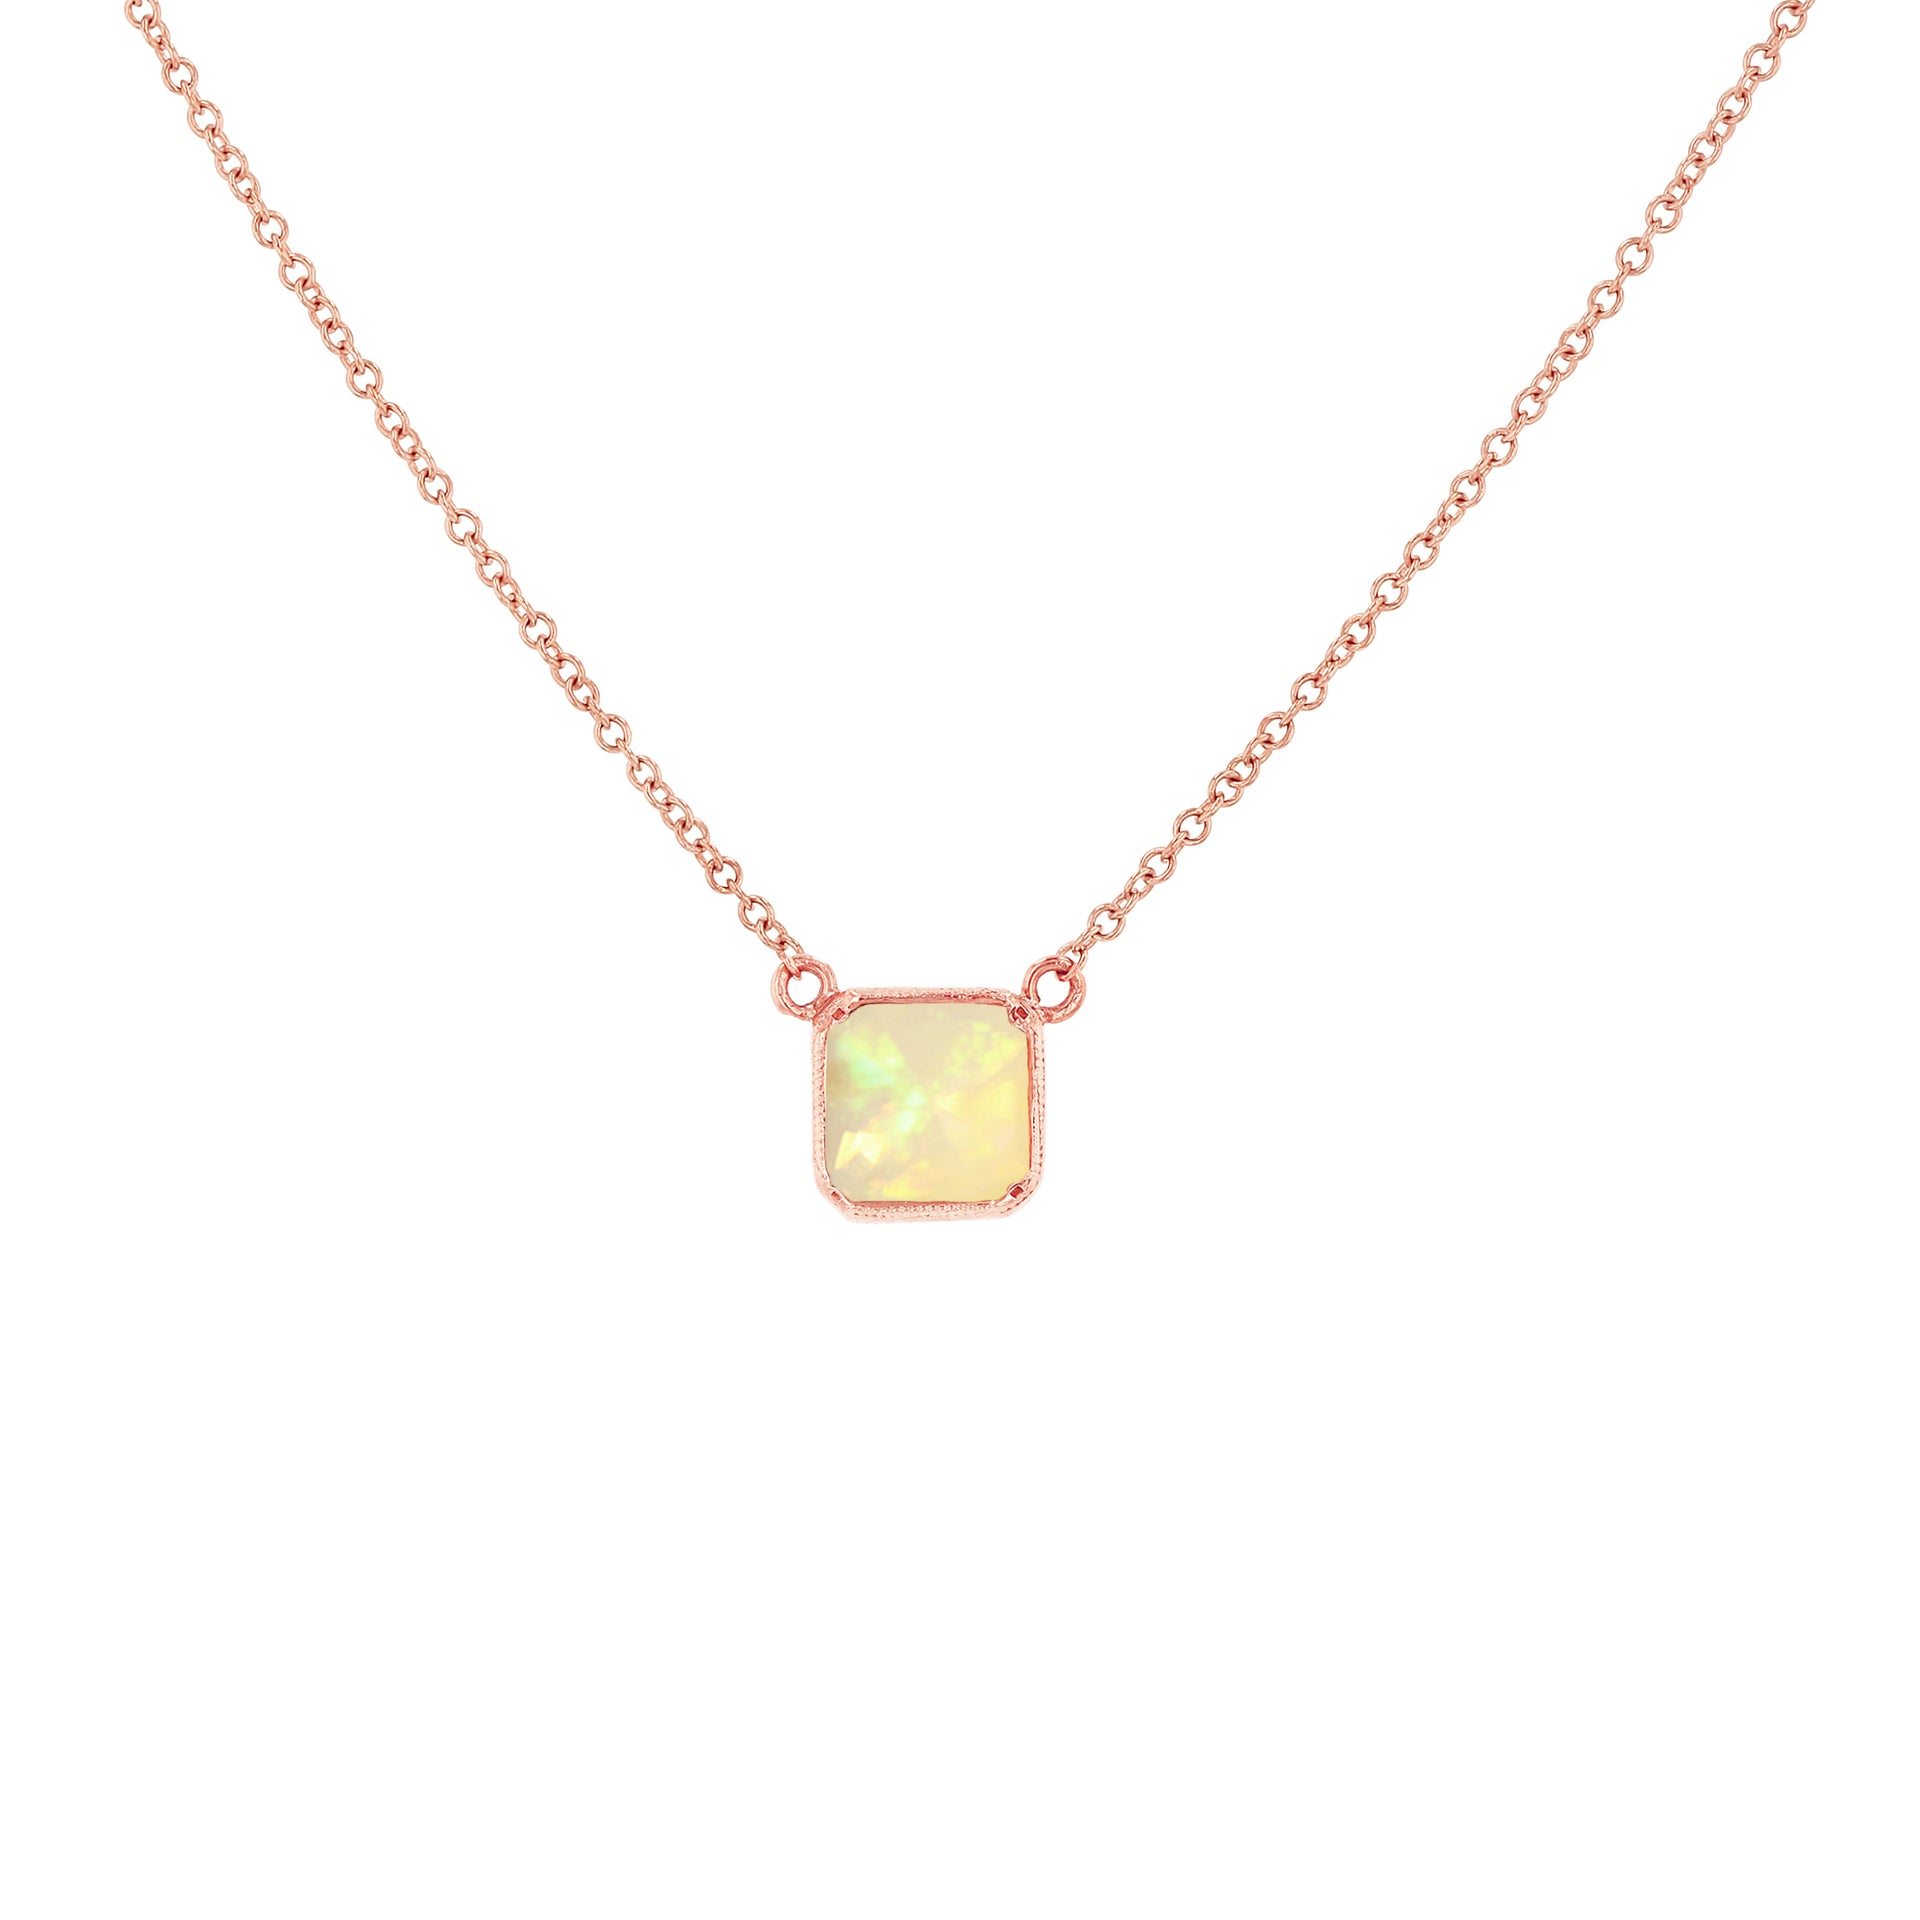 Square Bezel Opal Necklace - RTS